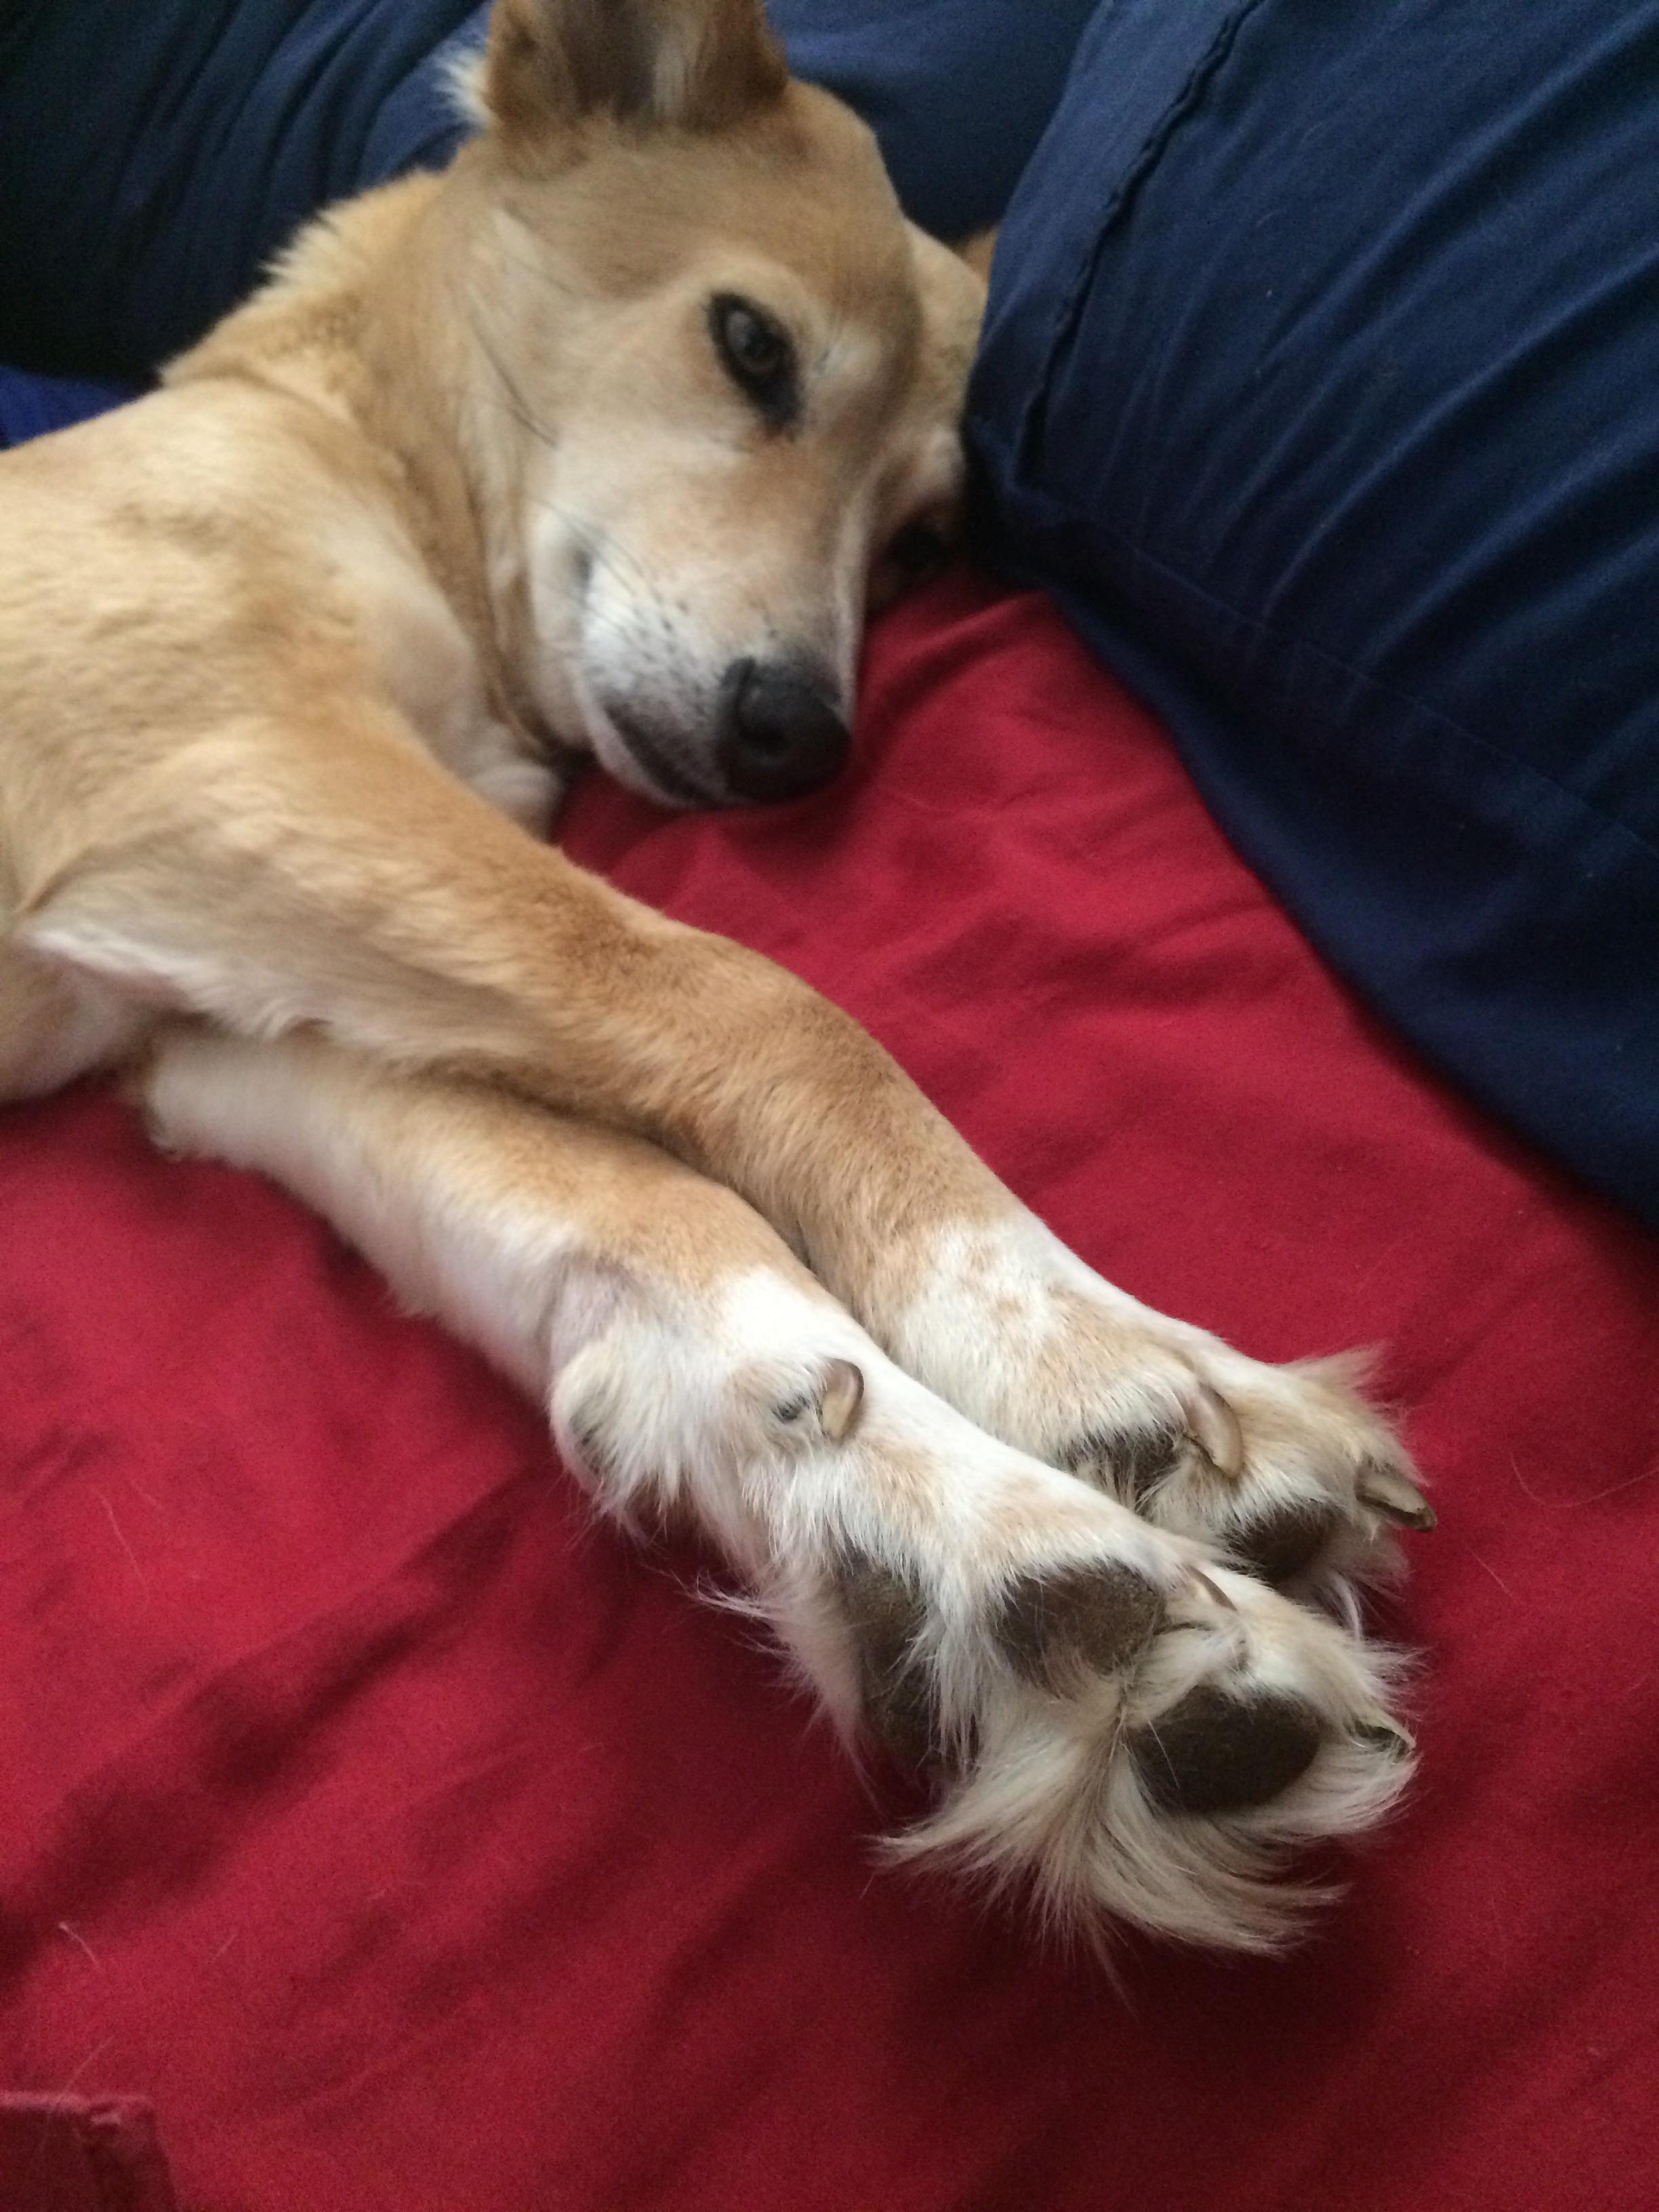 Fullsize Of How Many Toes Does A Dog Have